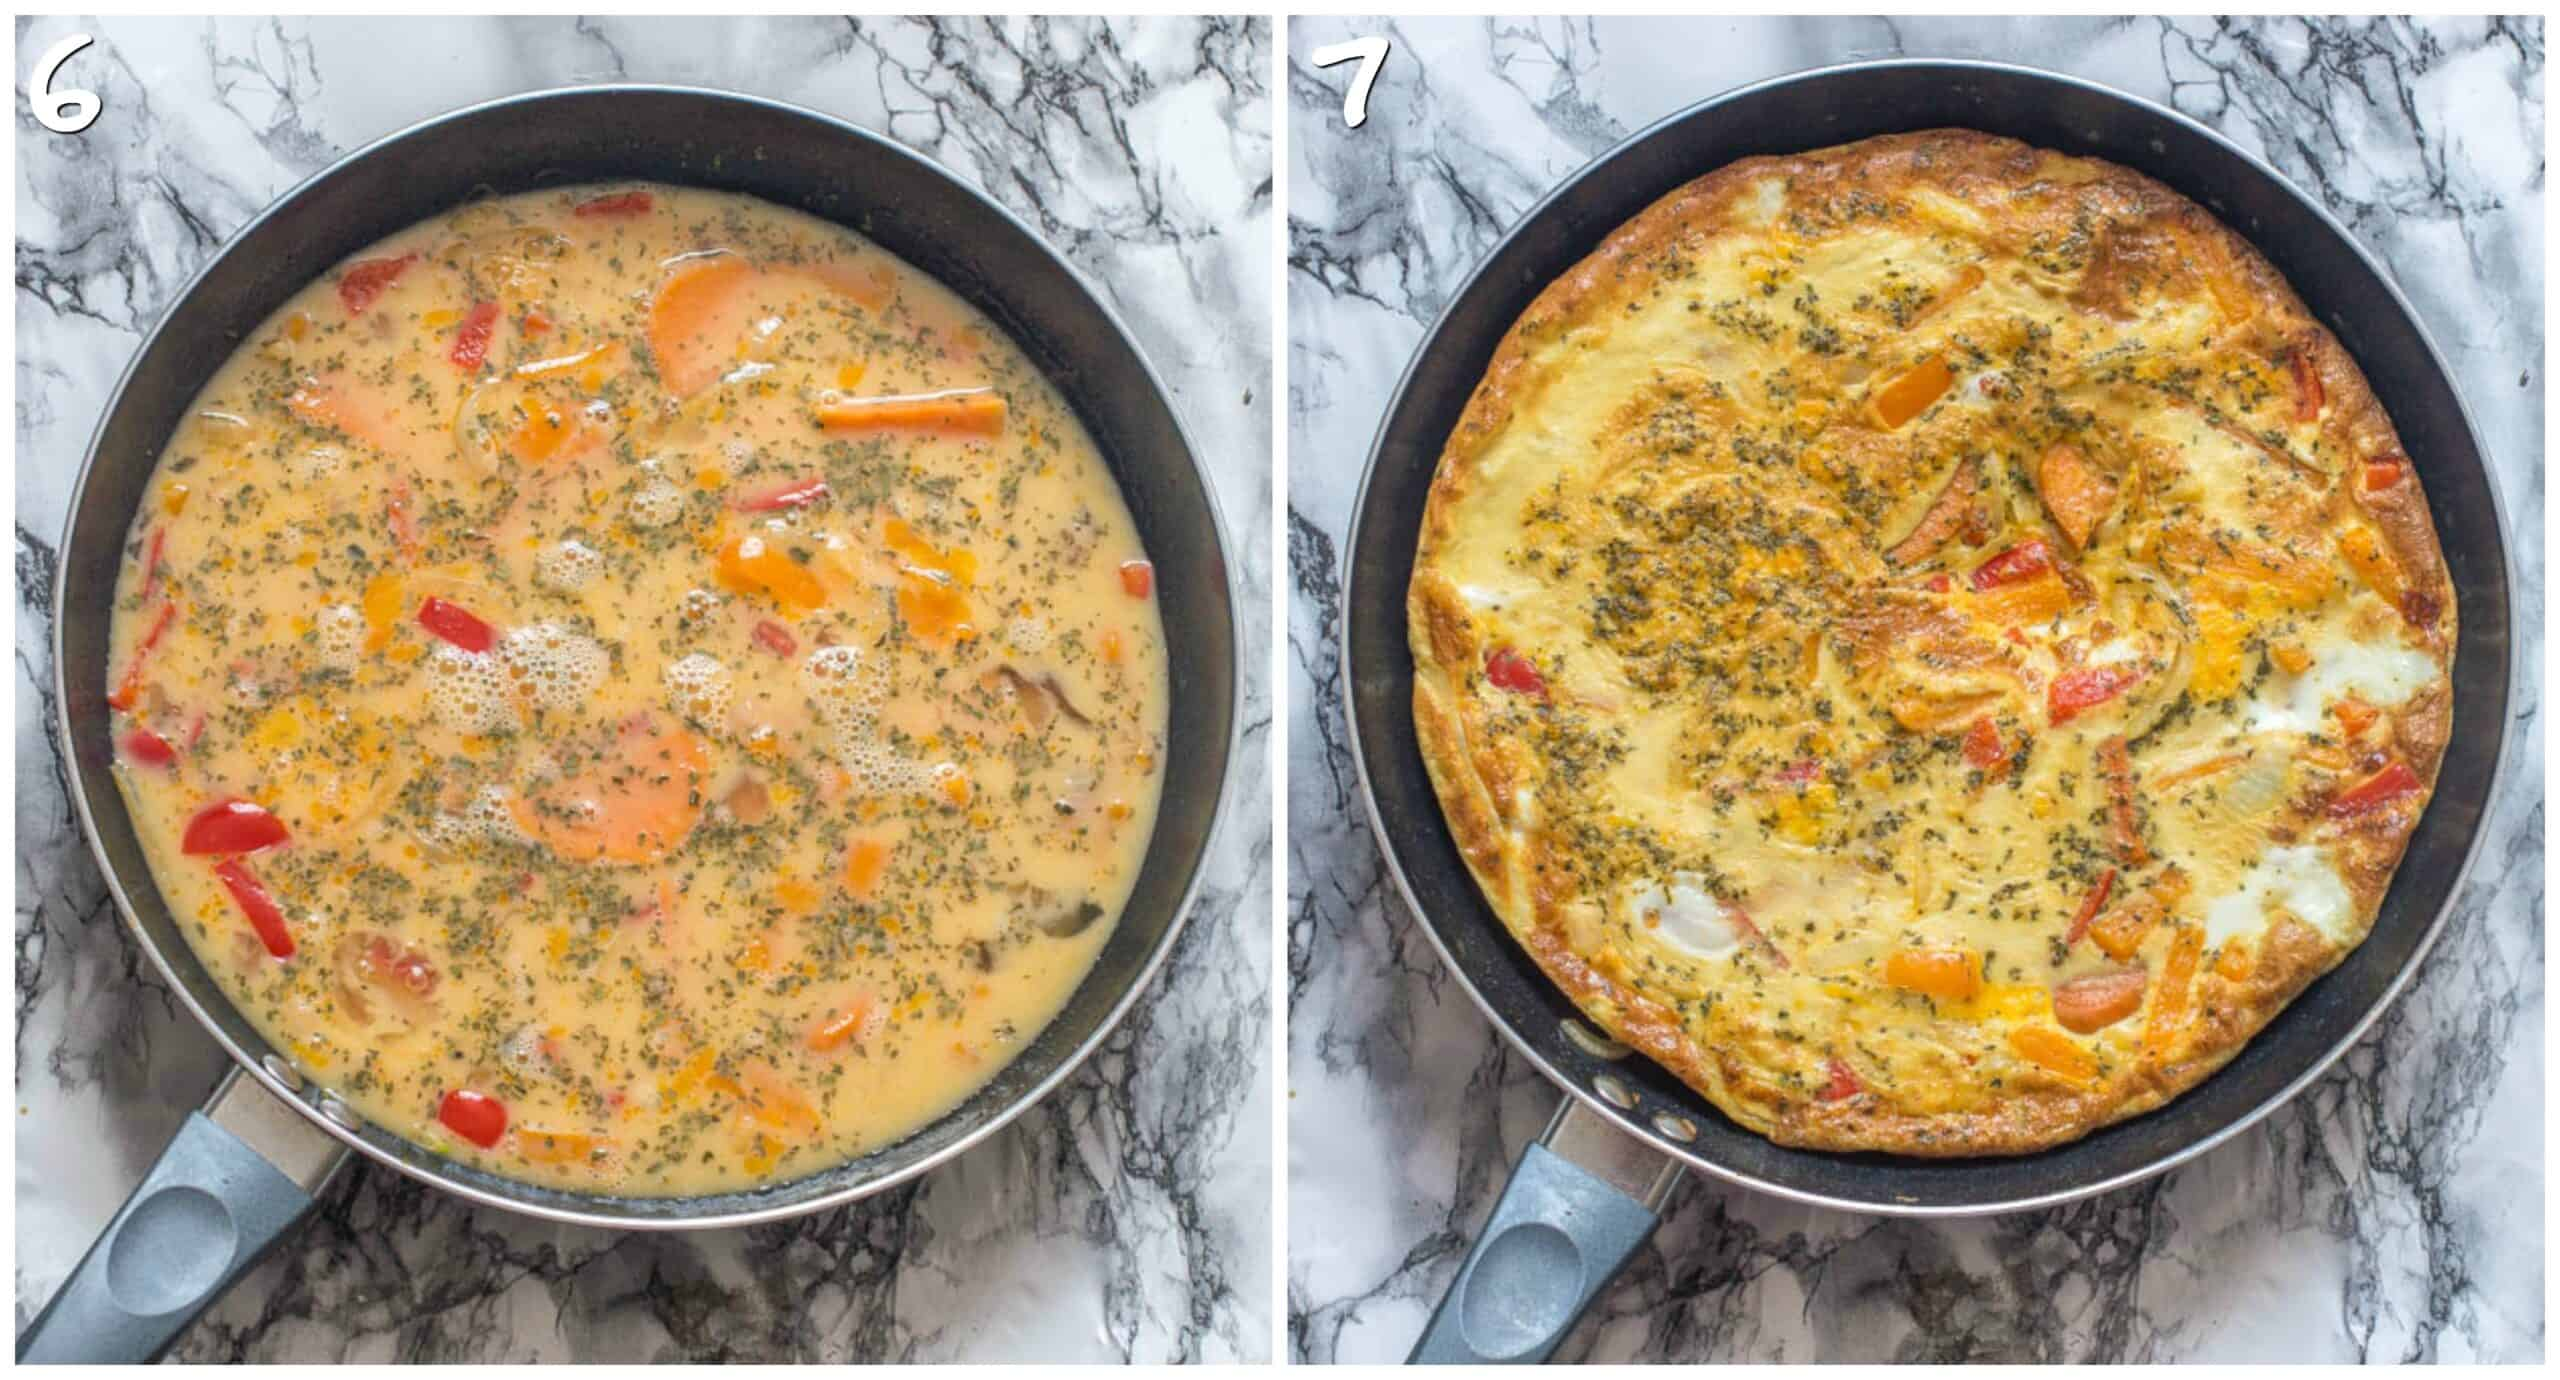 steps 6-7 setting the omelette in the pan